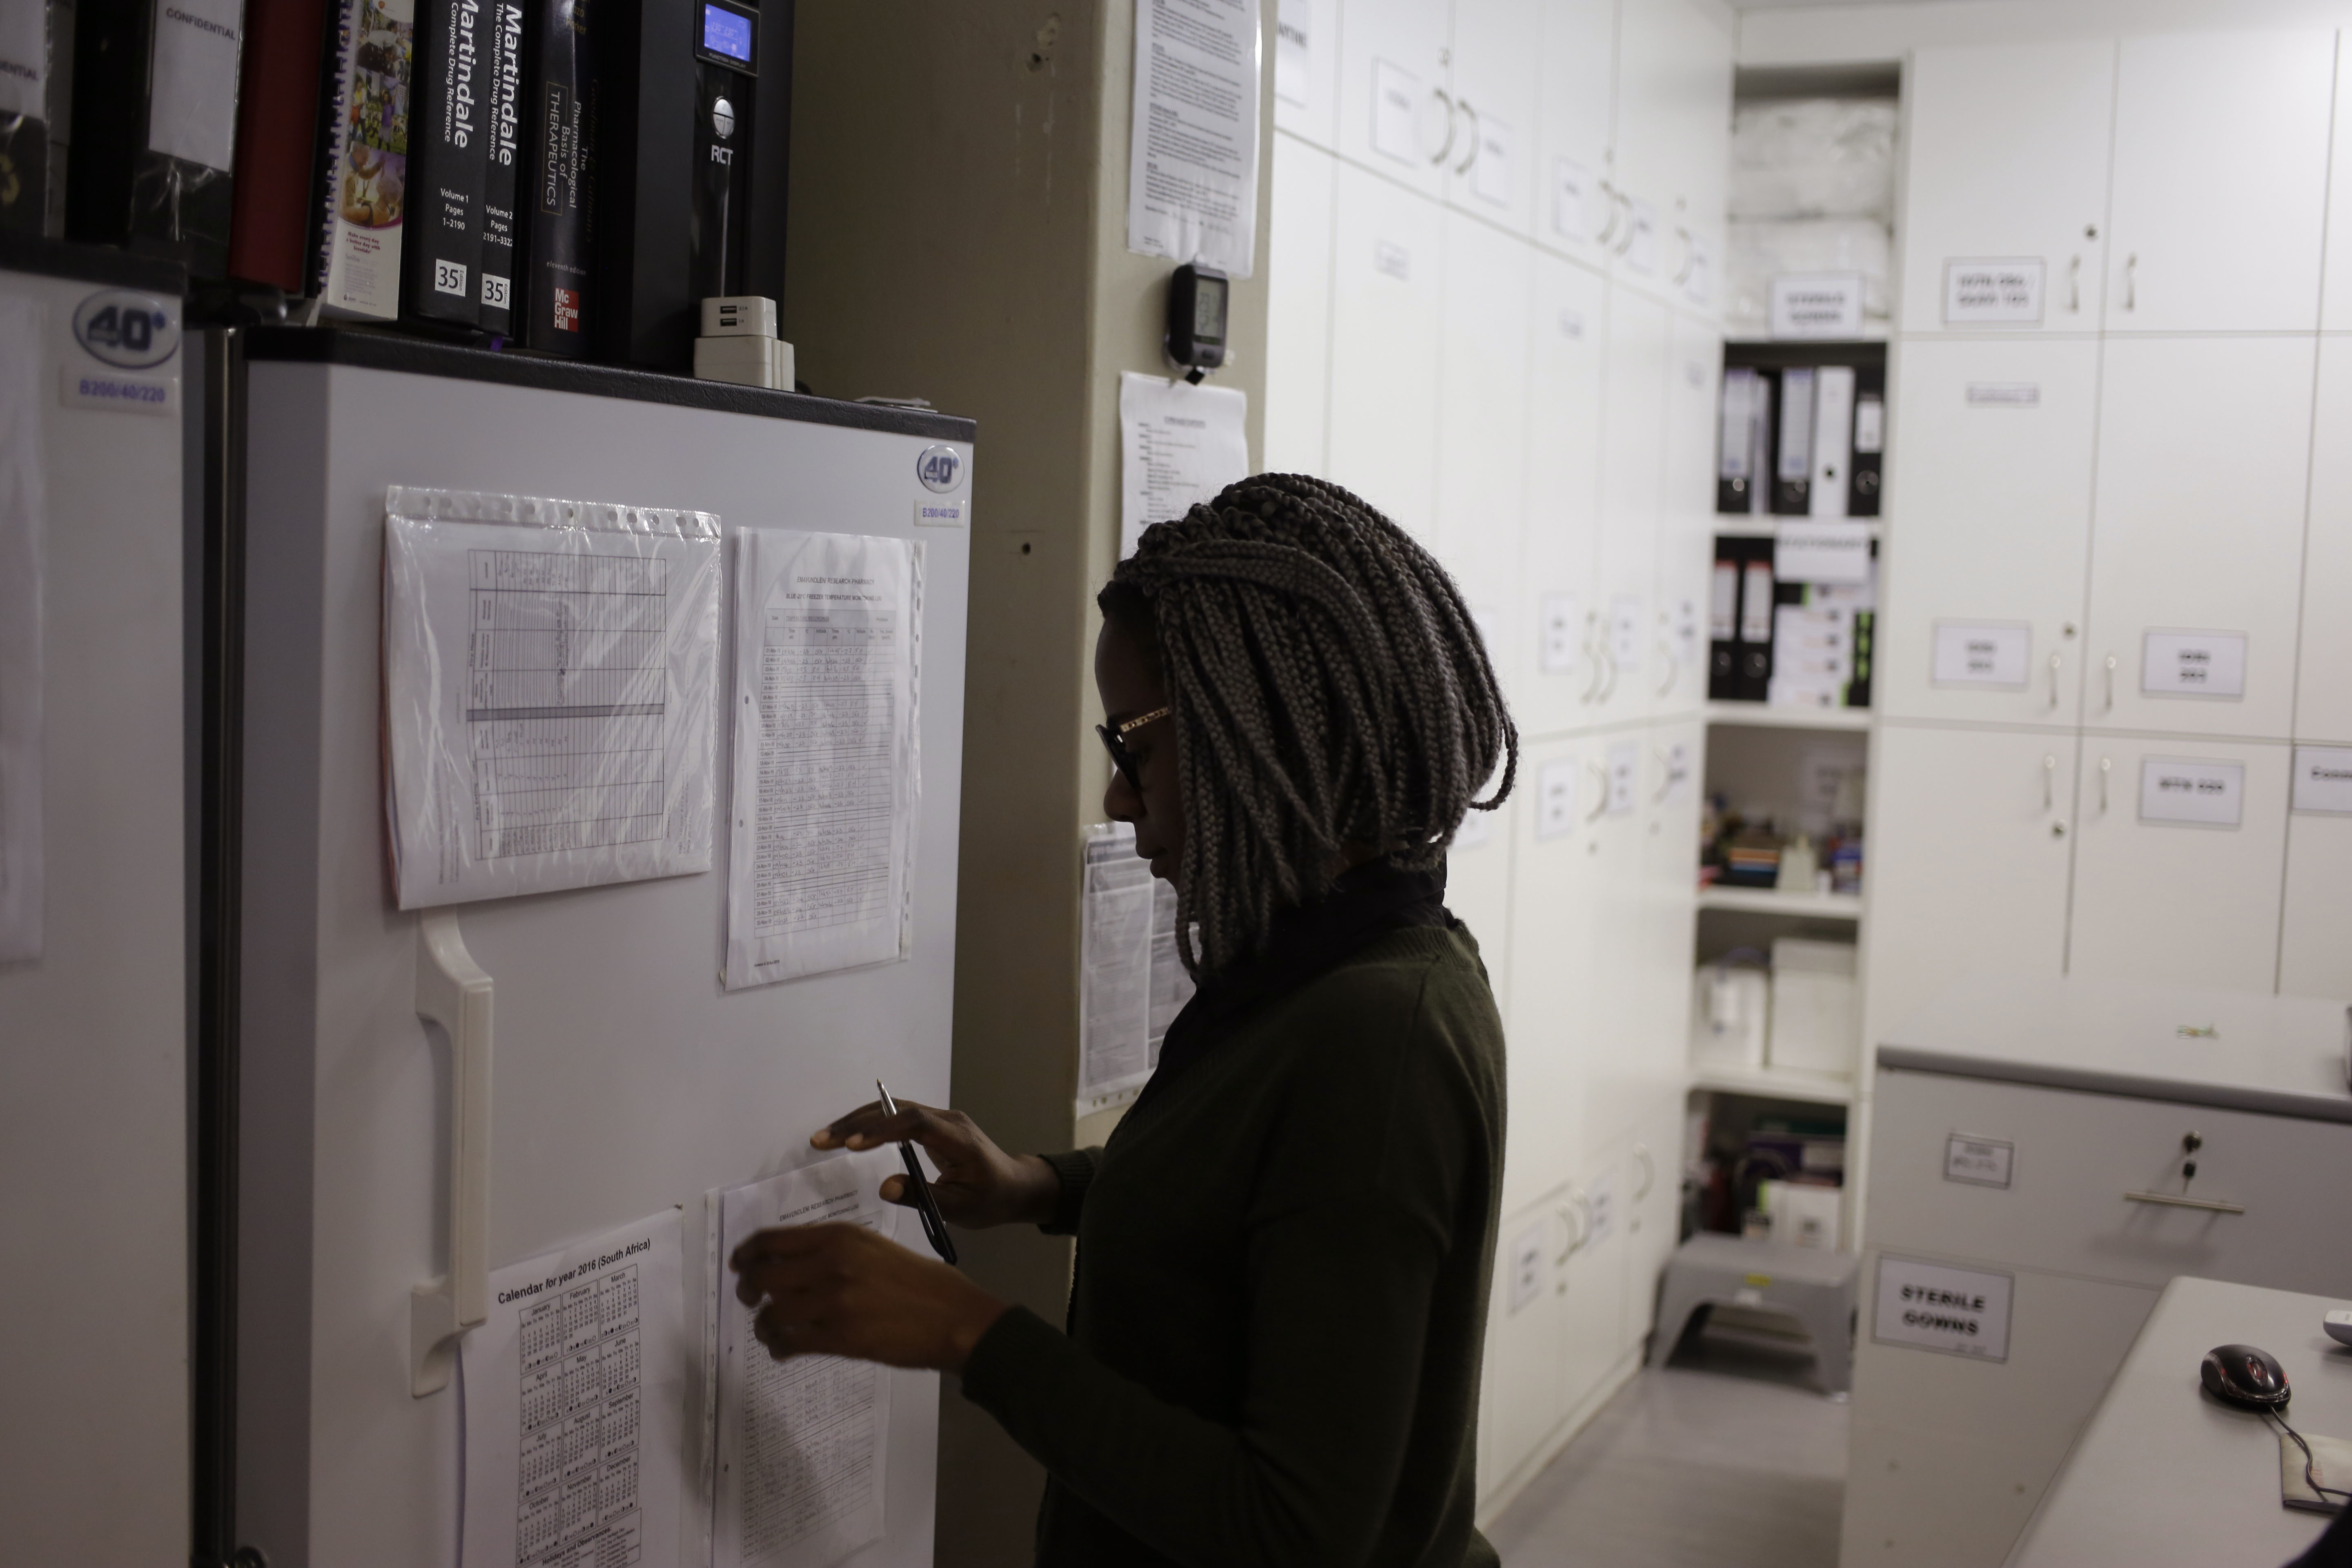 In a Nov. 30, 2016 file photo, pharmacist Mary Chindanyika looks at documents on a fridge containing a trial vaccine against HIV on the outskirts of Cape Town, South Africa. The latest attempt at an HIV vaccine has failed.